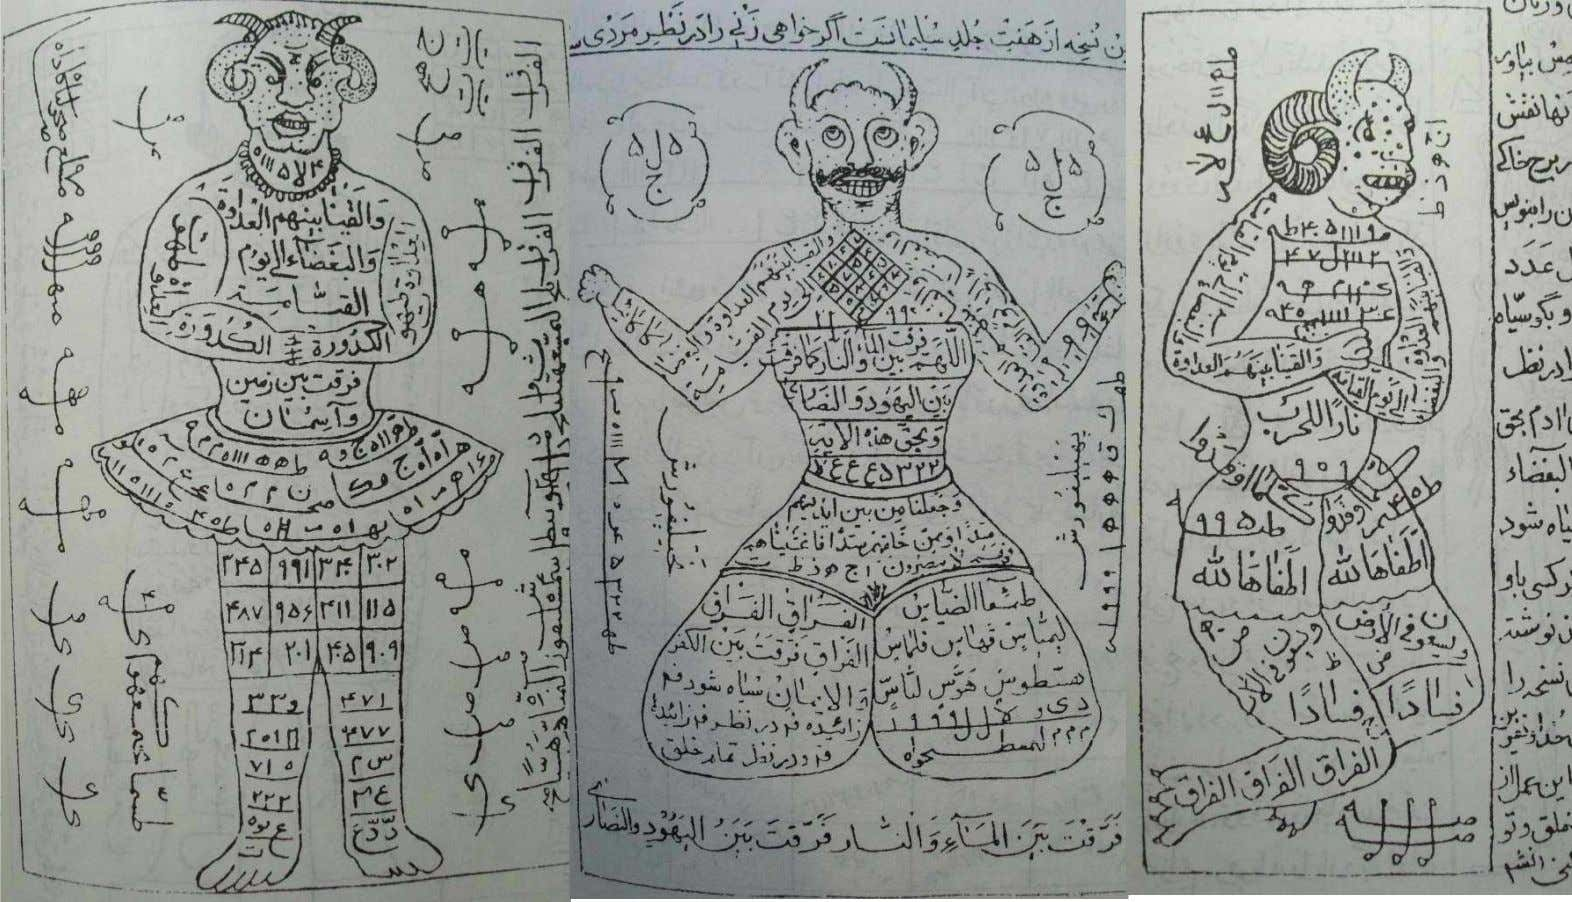 INVOKING DJINNS IN SEDUCTION TALISMANS Djinns are illustrated as mighty auxiliaries in quranic talismanology , featuring